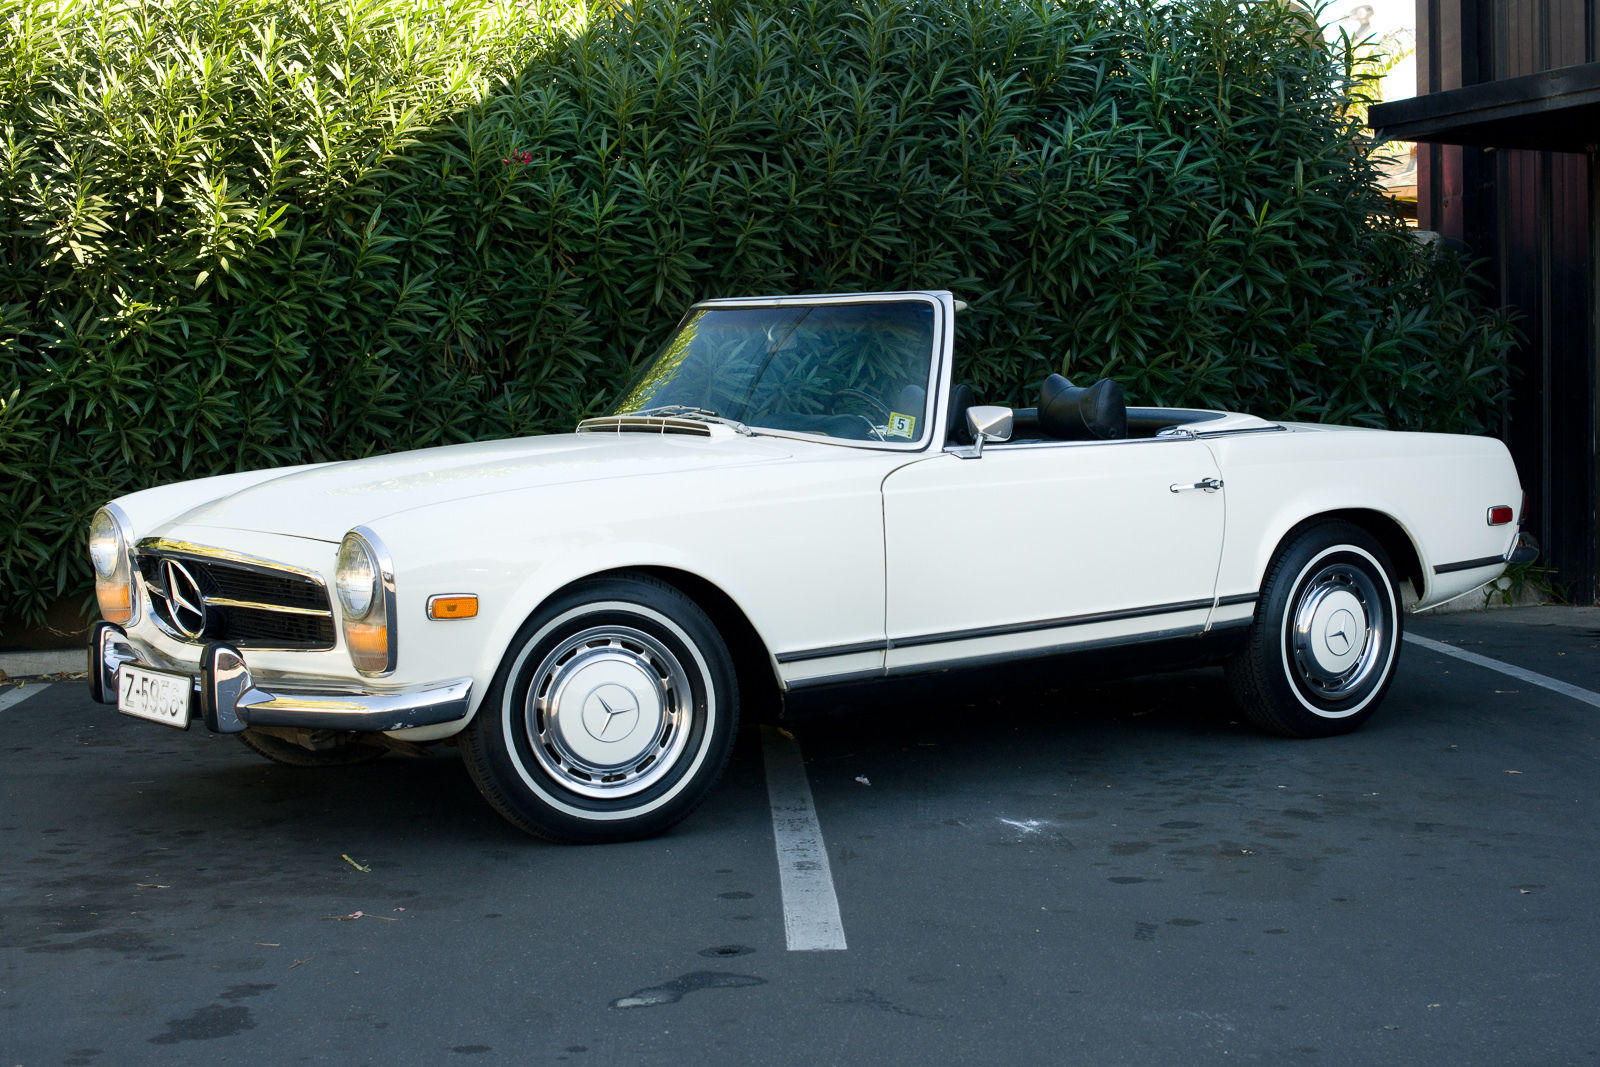 1969 mercedes benz 280sl convertible roadster classic for Old mercedes benz models